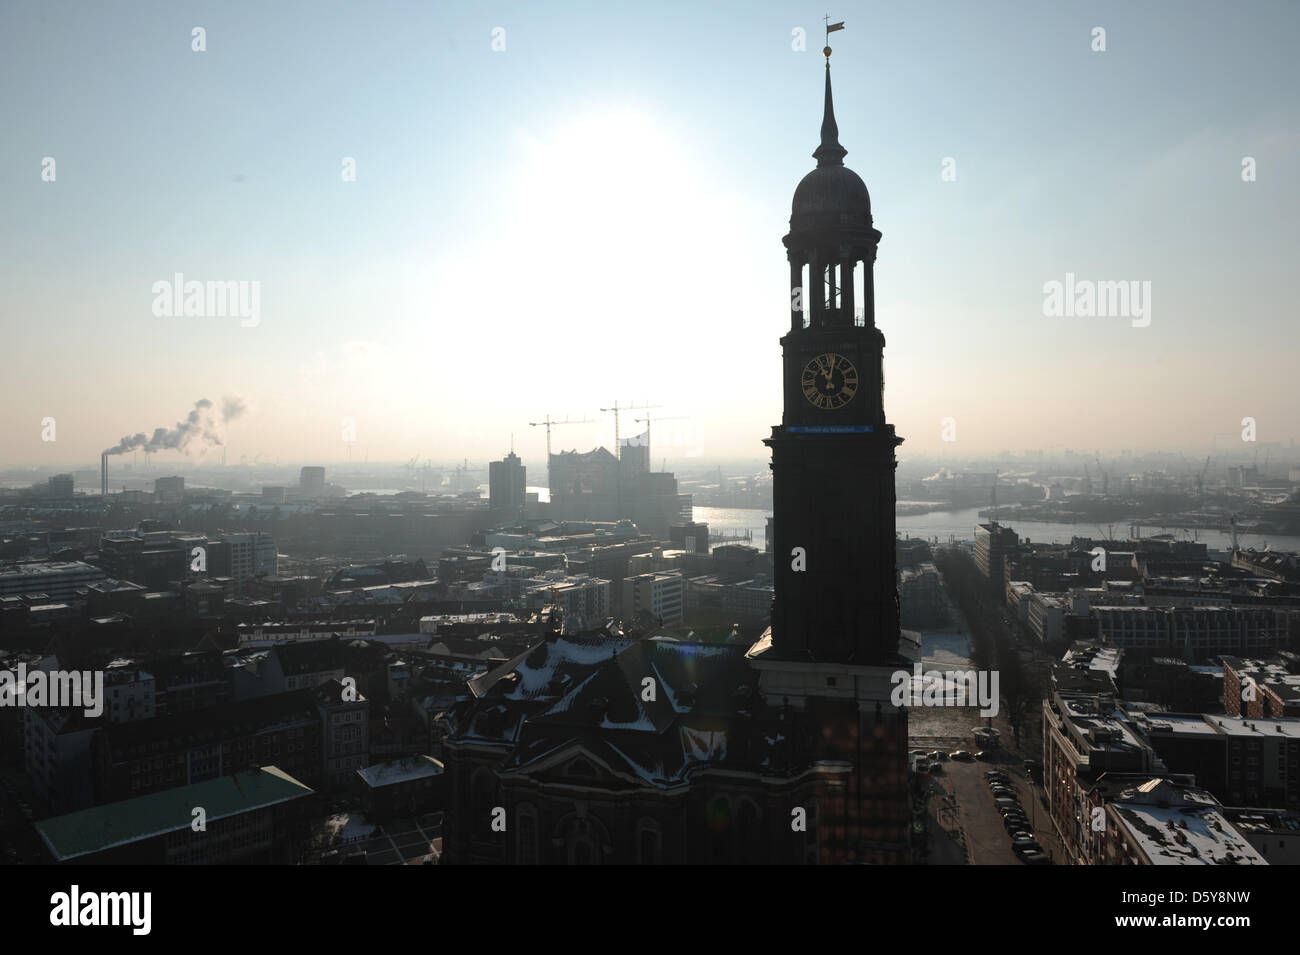 (dpa-file) - A file picture dated 31 January 2012 shows the St.Michaelis church, also known as Michel, in Hamburg, - Stock Image